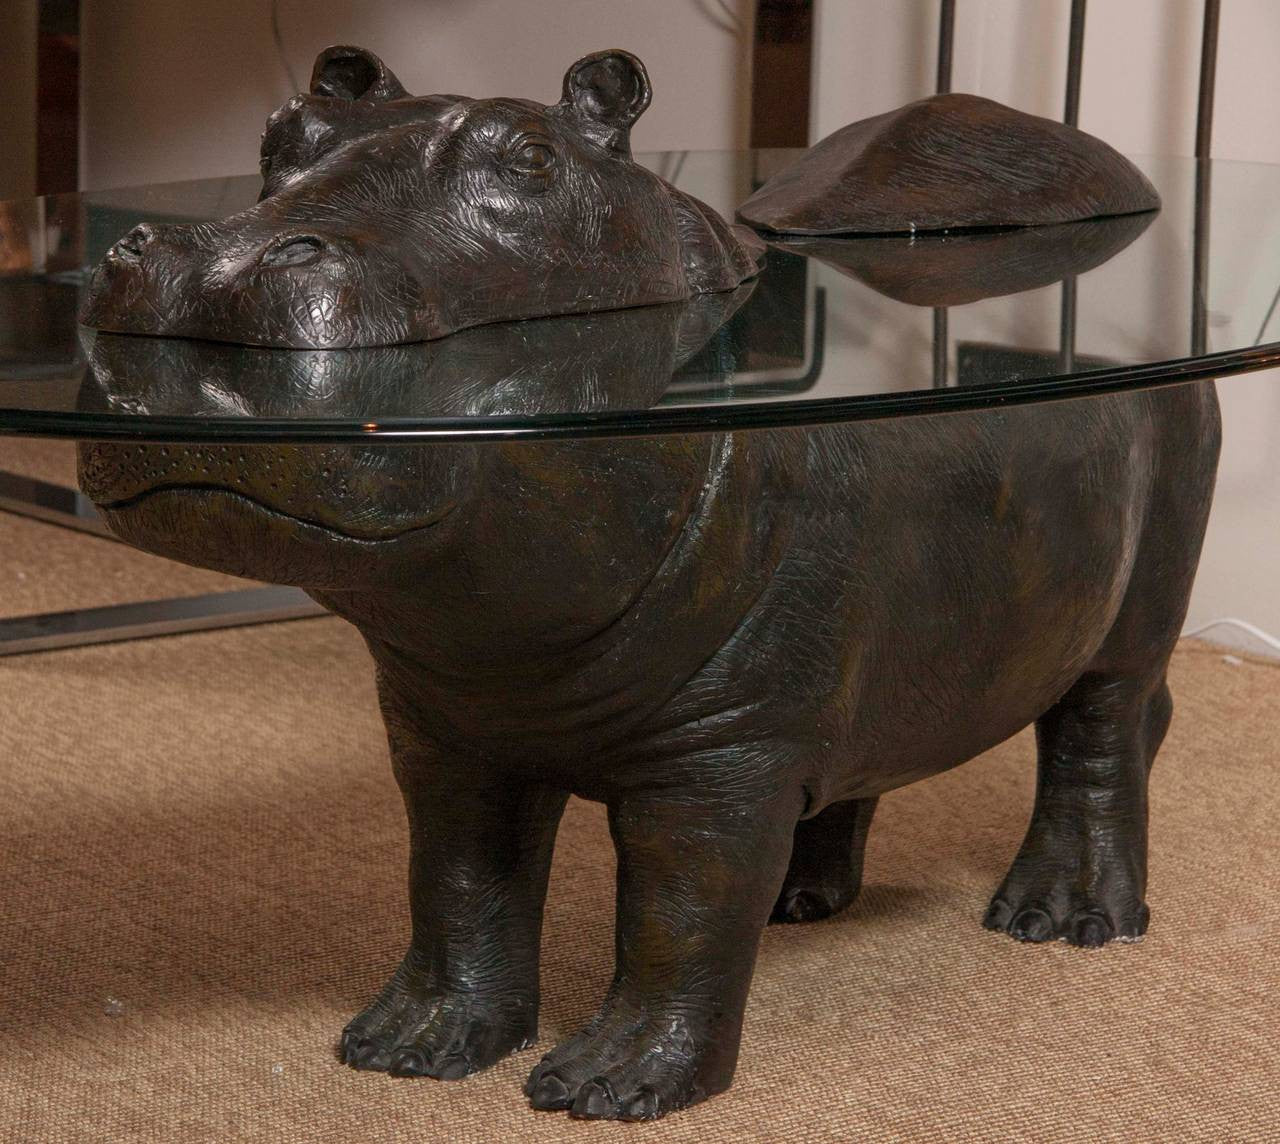 Hippo Table by Mark Stoddart